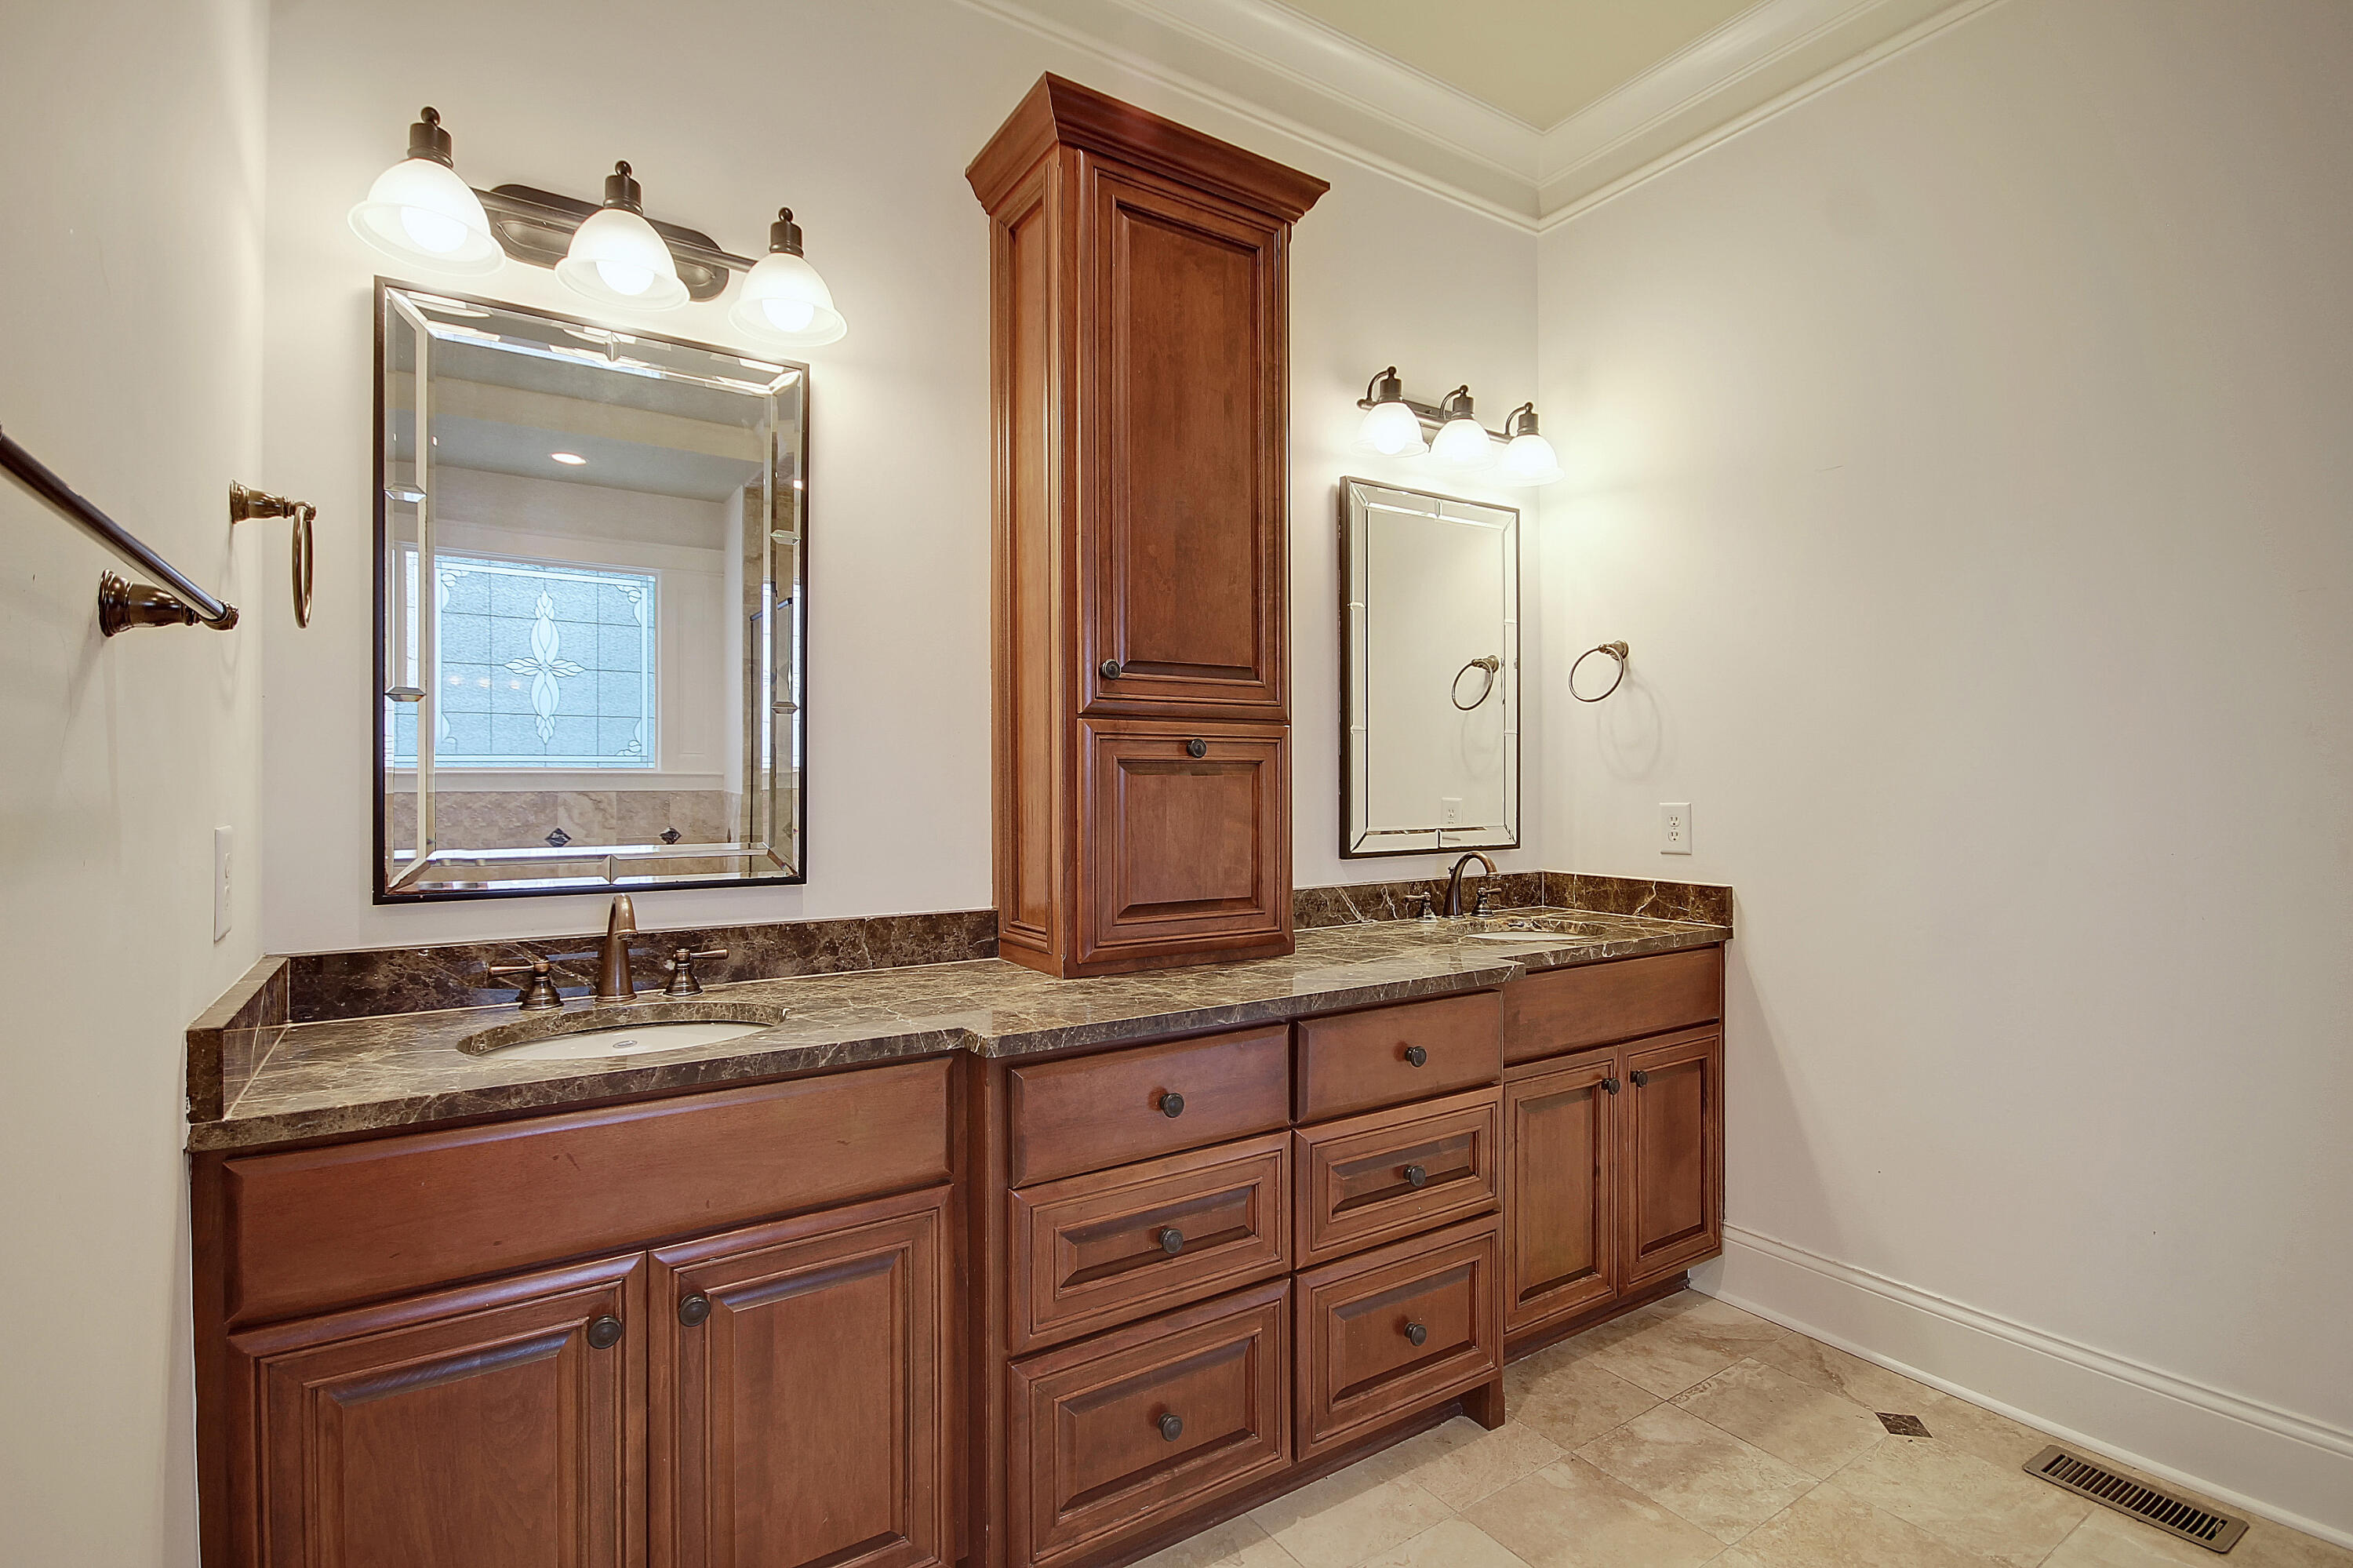 Rivertowne Country Club Homes For Sale - 1632 Rivertowne Country Club, Mount Pleasant, SC - 48